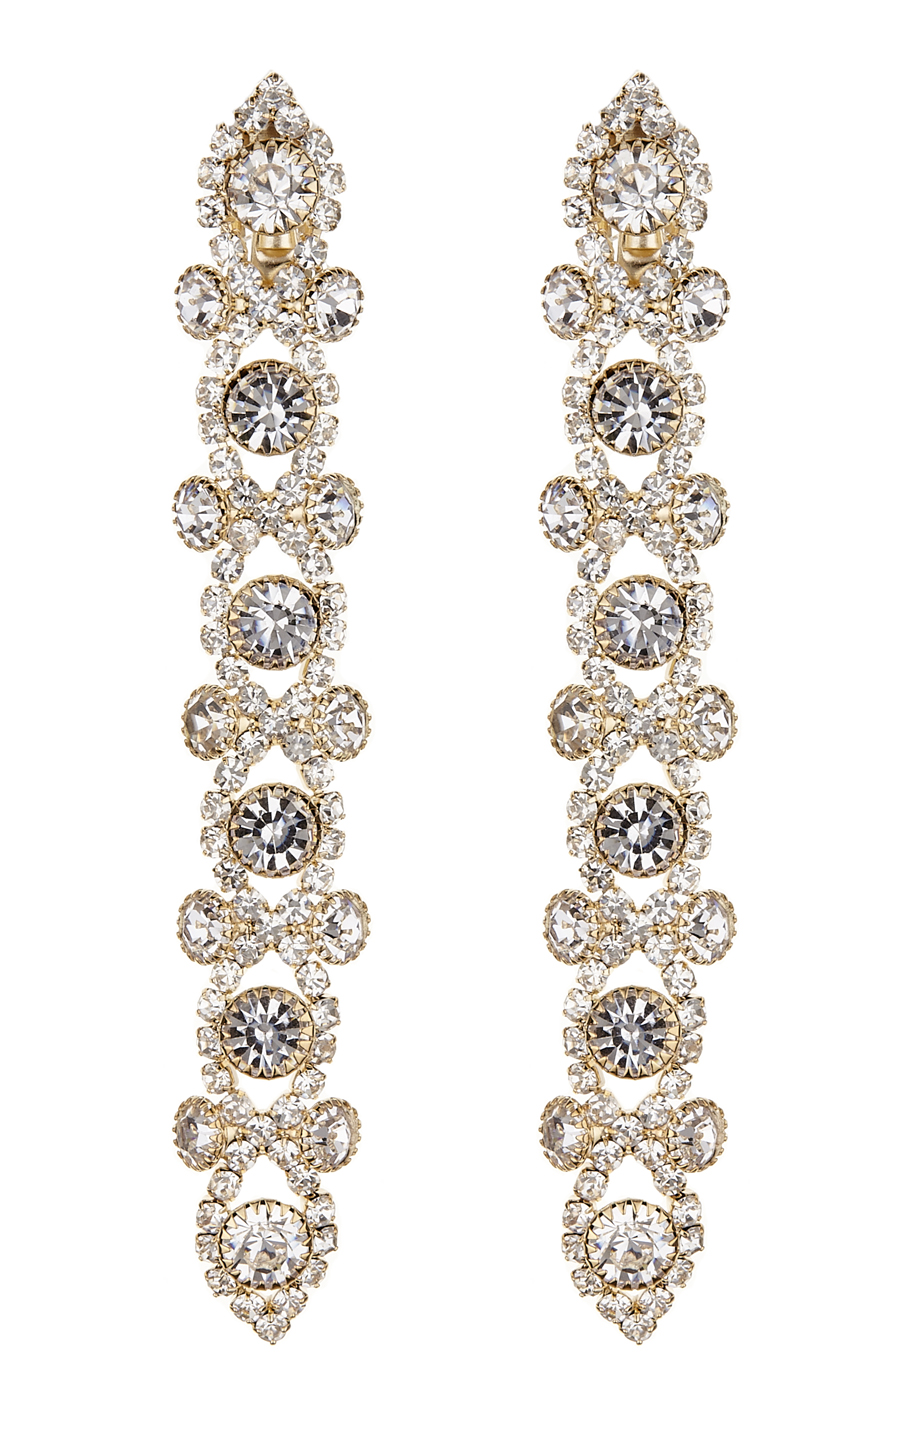 Clip On Earrings - Cassidy G - gold drop earring with clear crystals